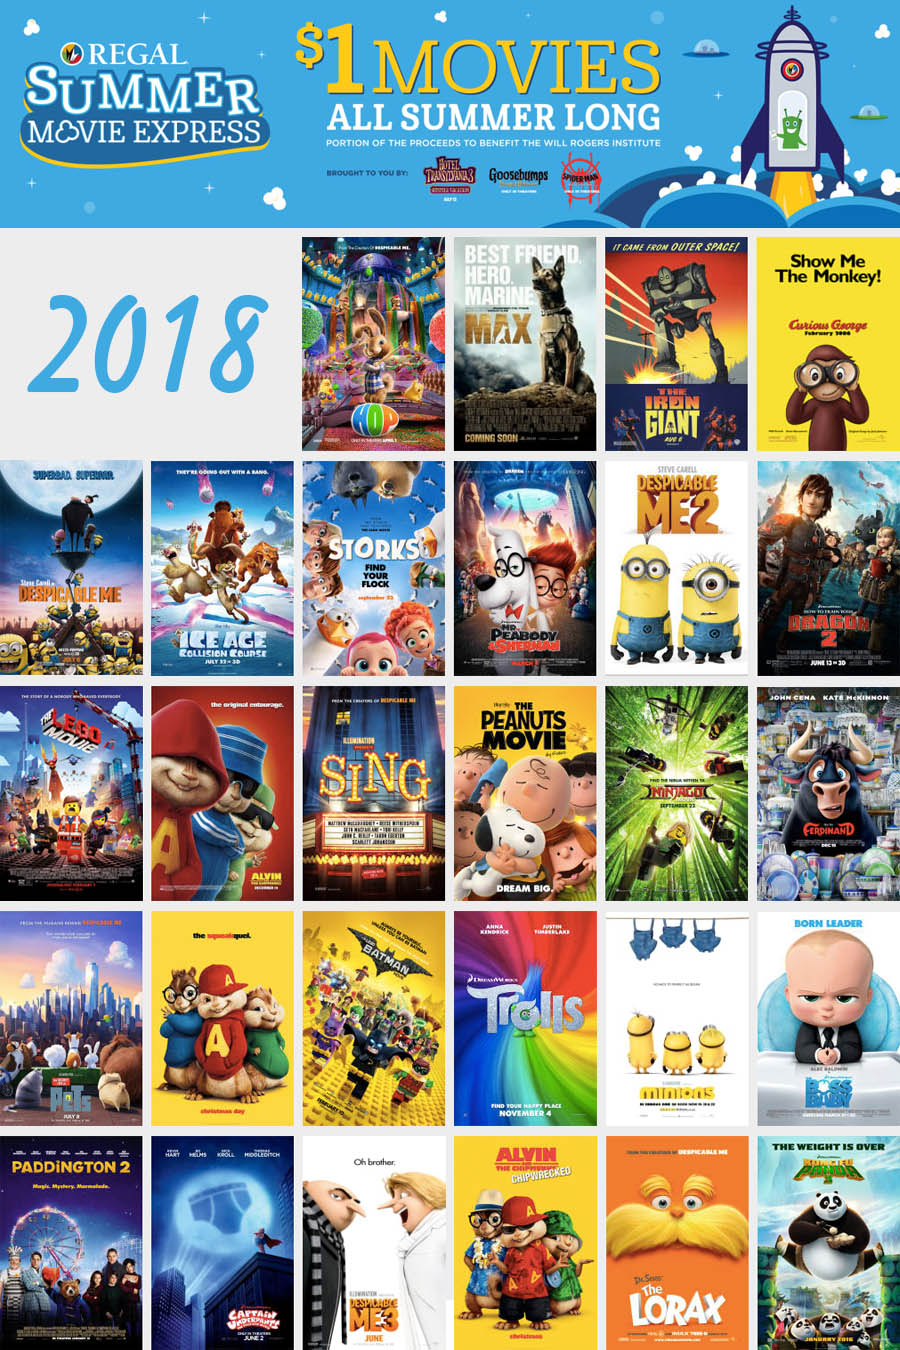 2018 Summer Movie Deals — Regal Summer Movie Express